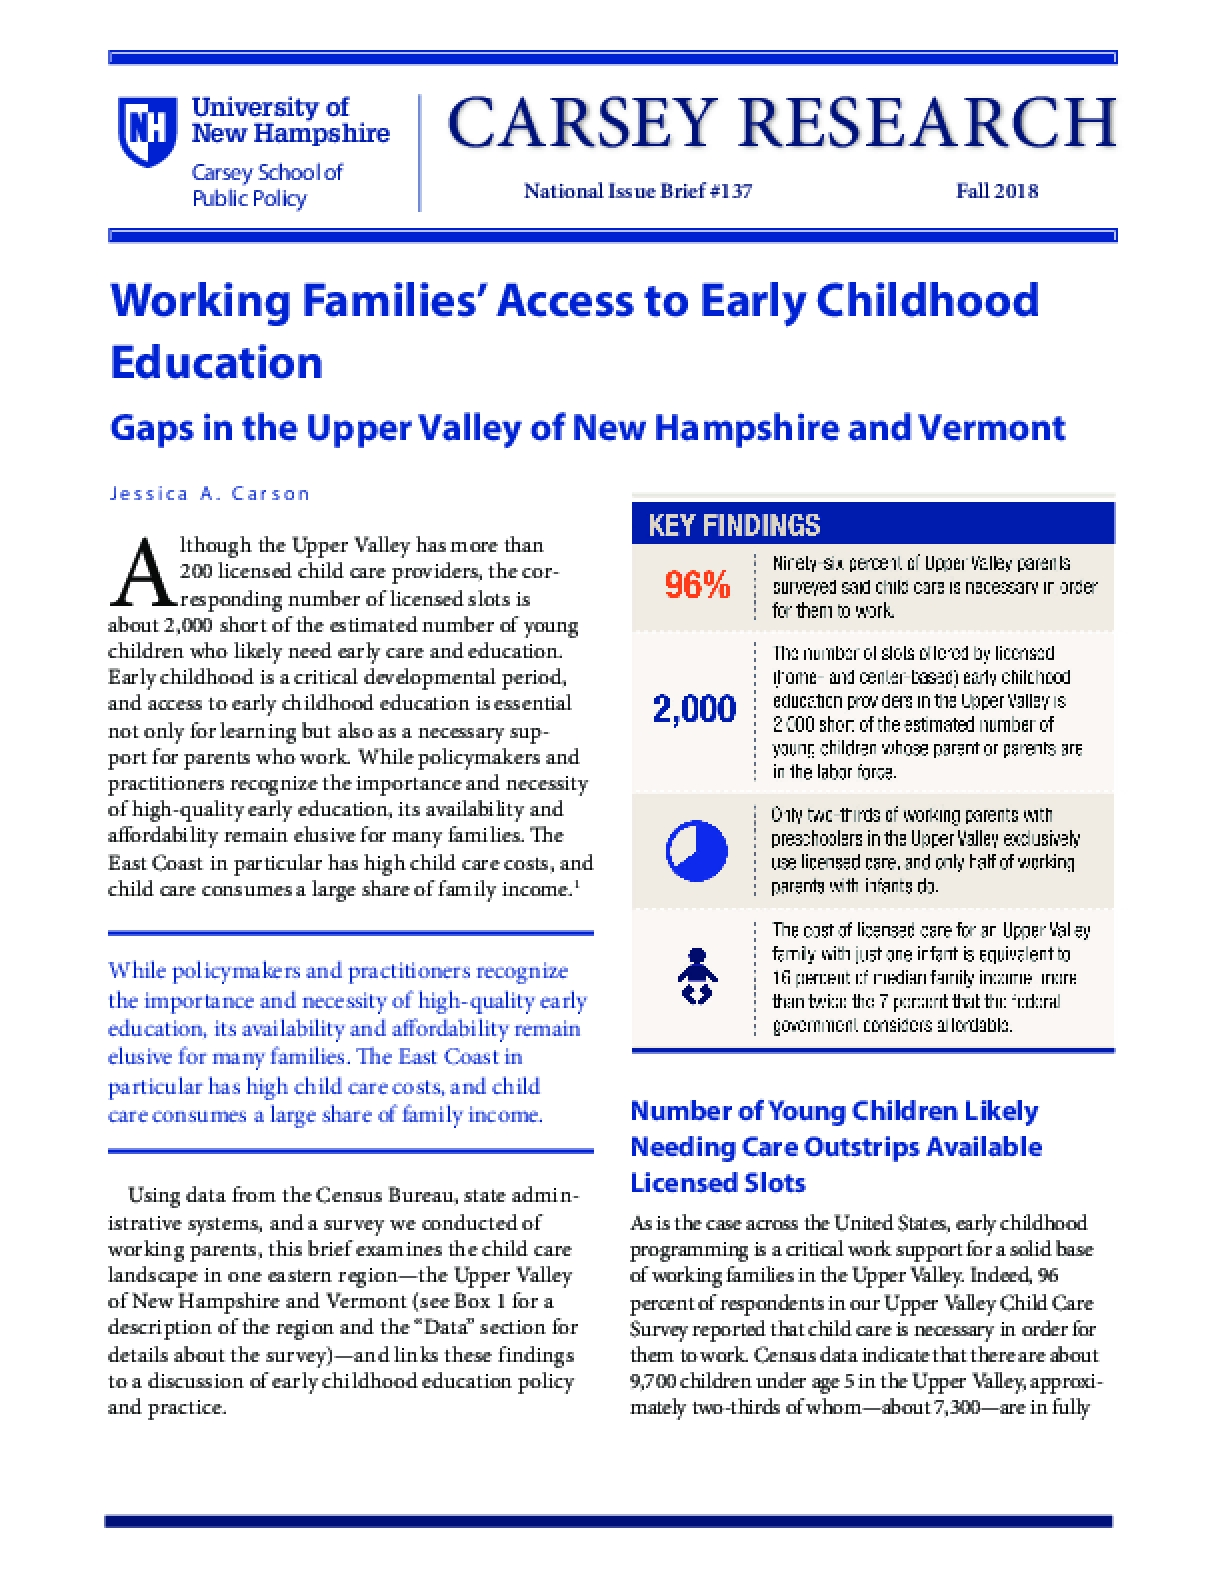 Working Families' Access to Early Childhood Education